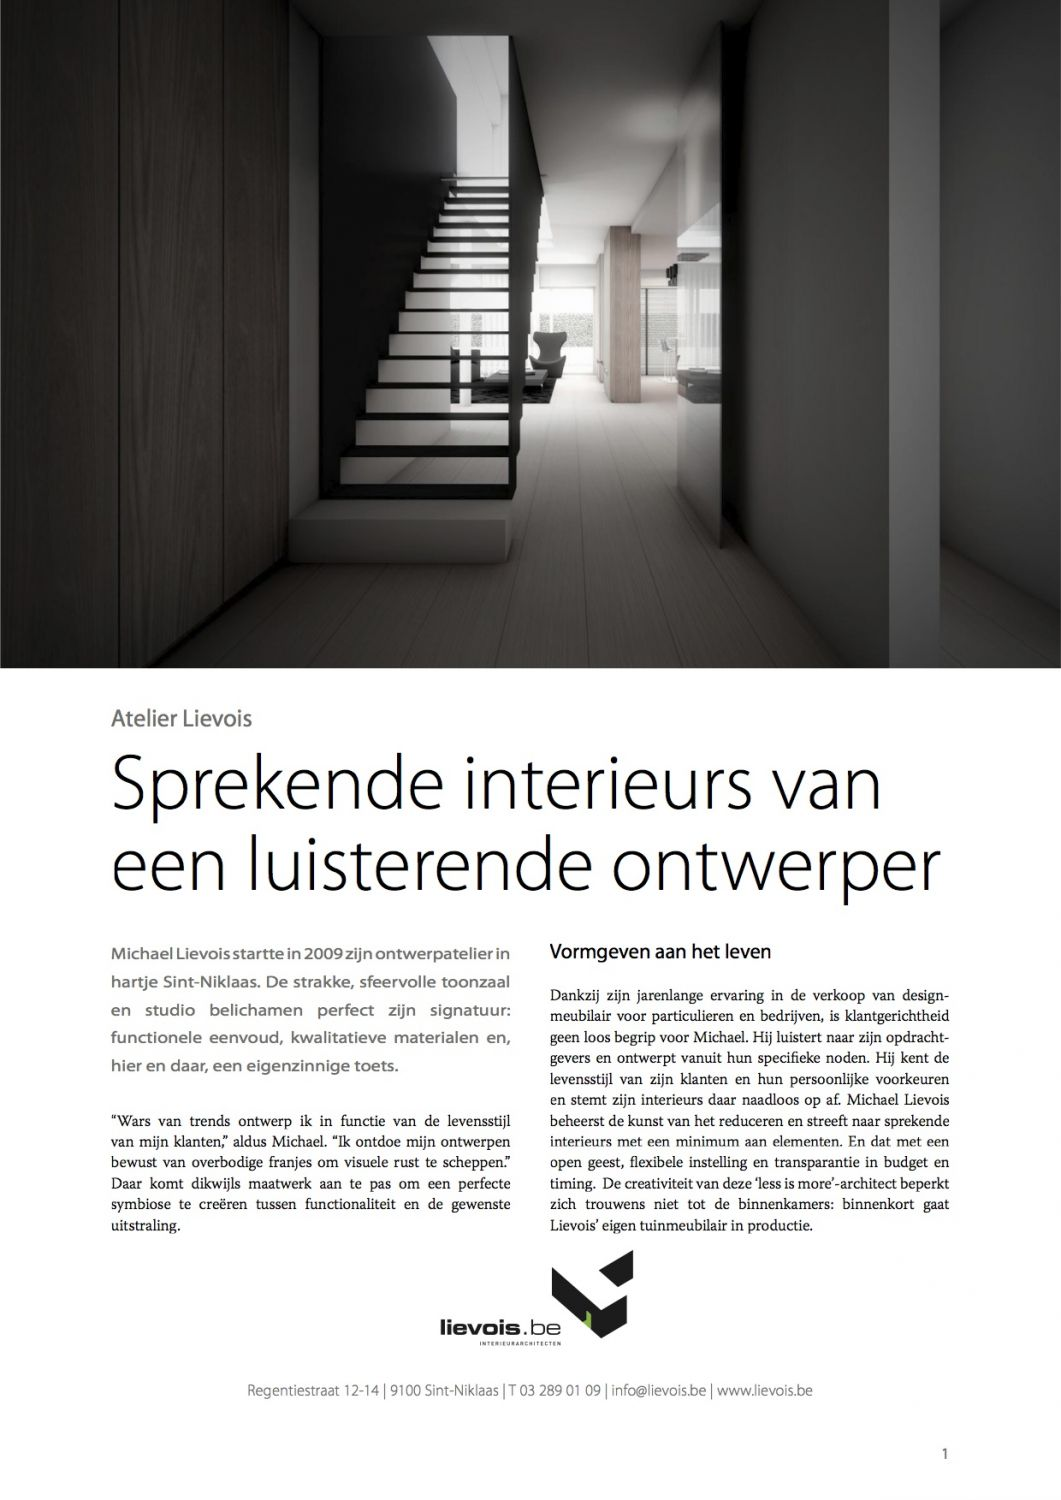 Interieur Design Sint Niklaas Lievois Be Interieurarchitect Sint Niklaas